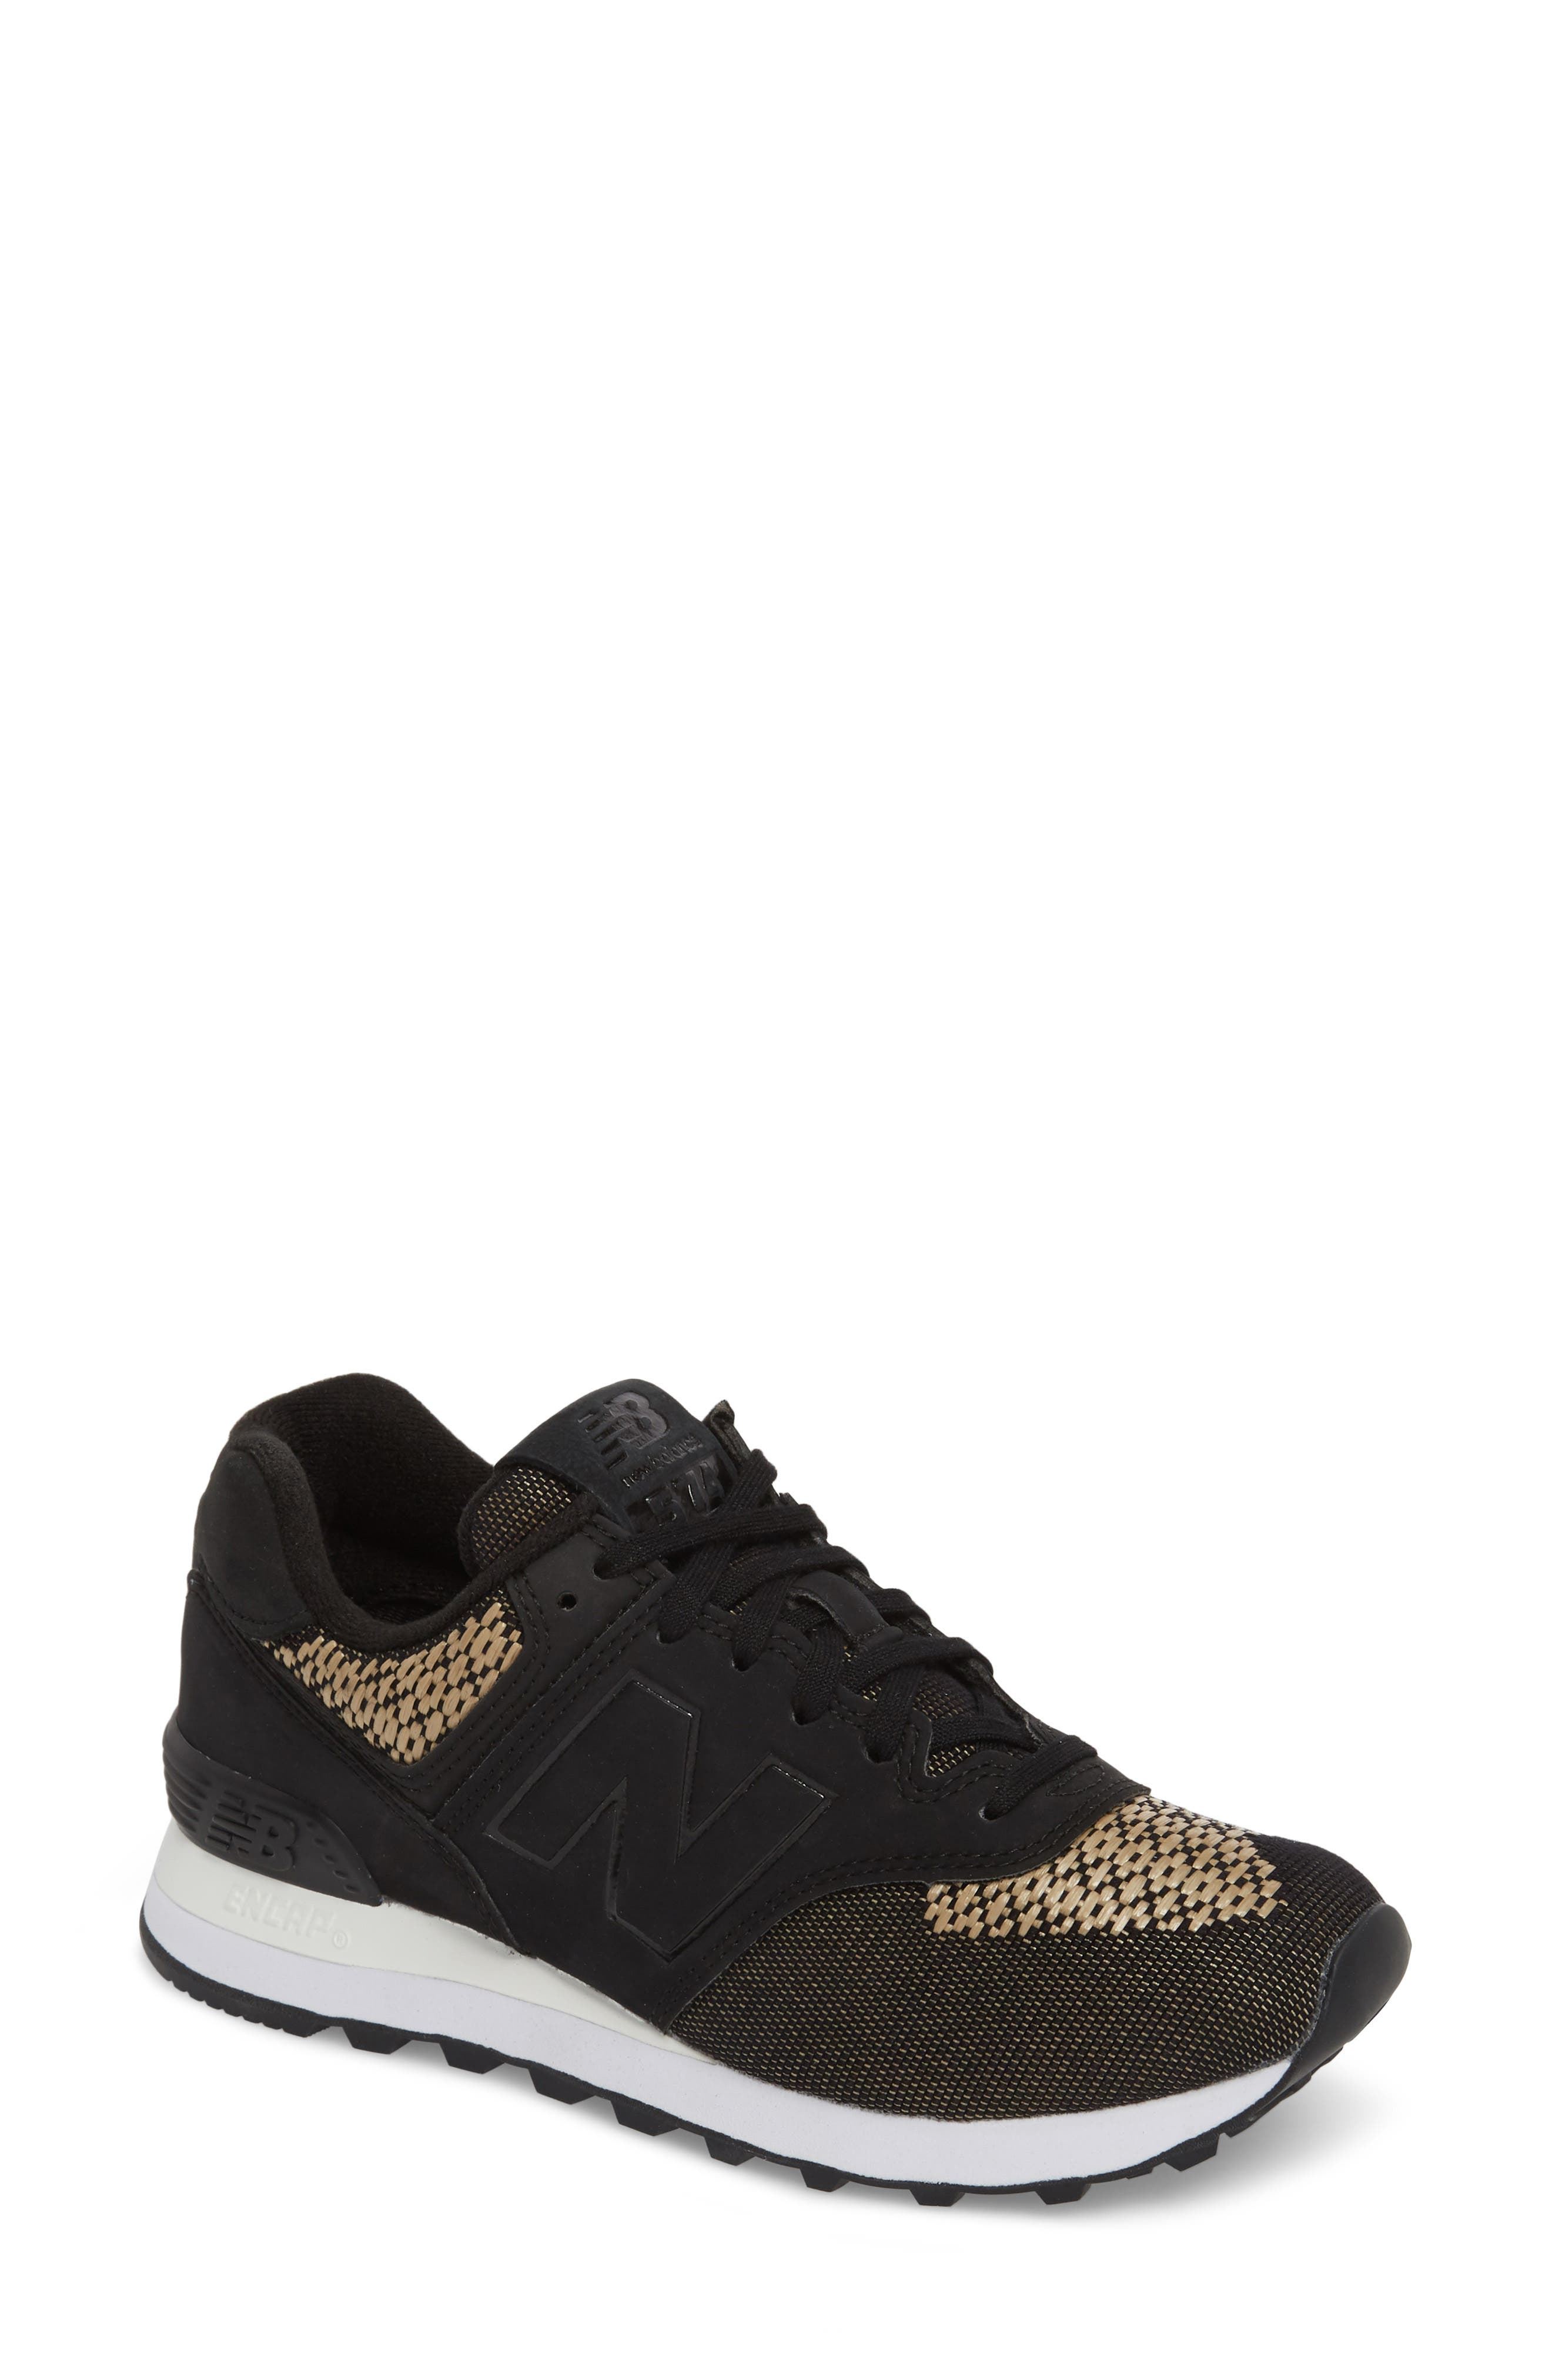 New Balance 574 Tech Raffia Sneaker (Women)